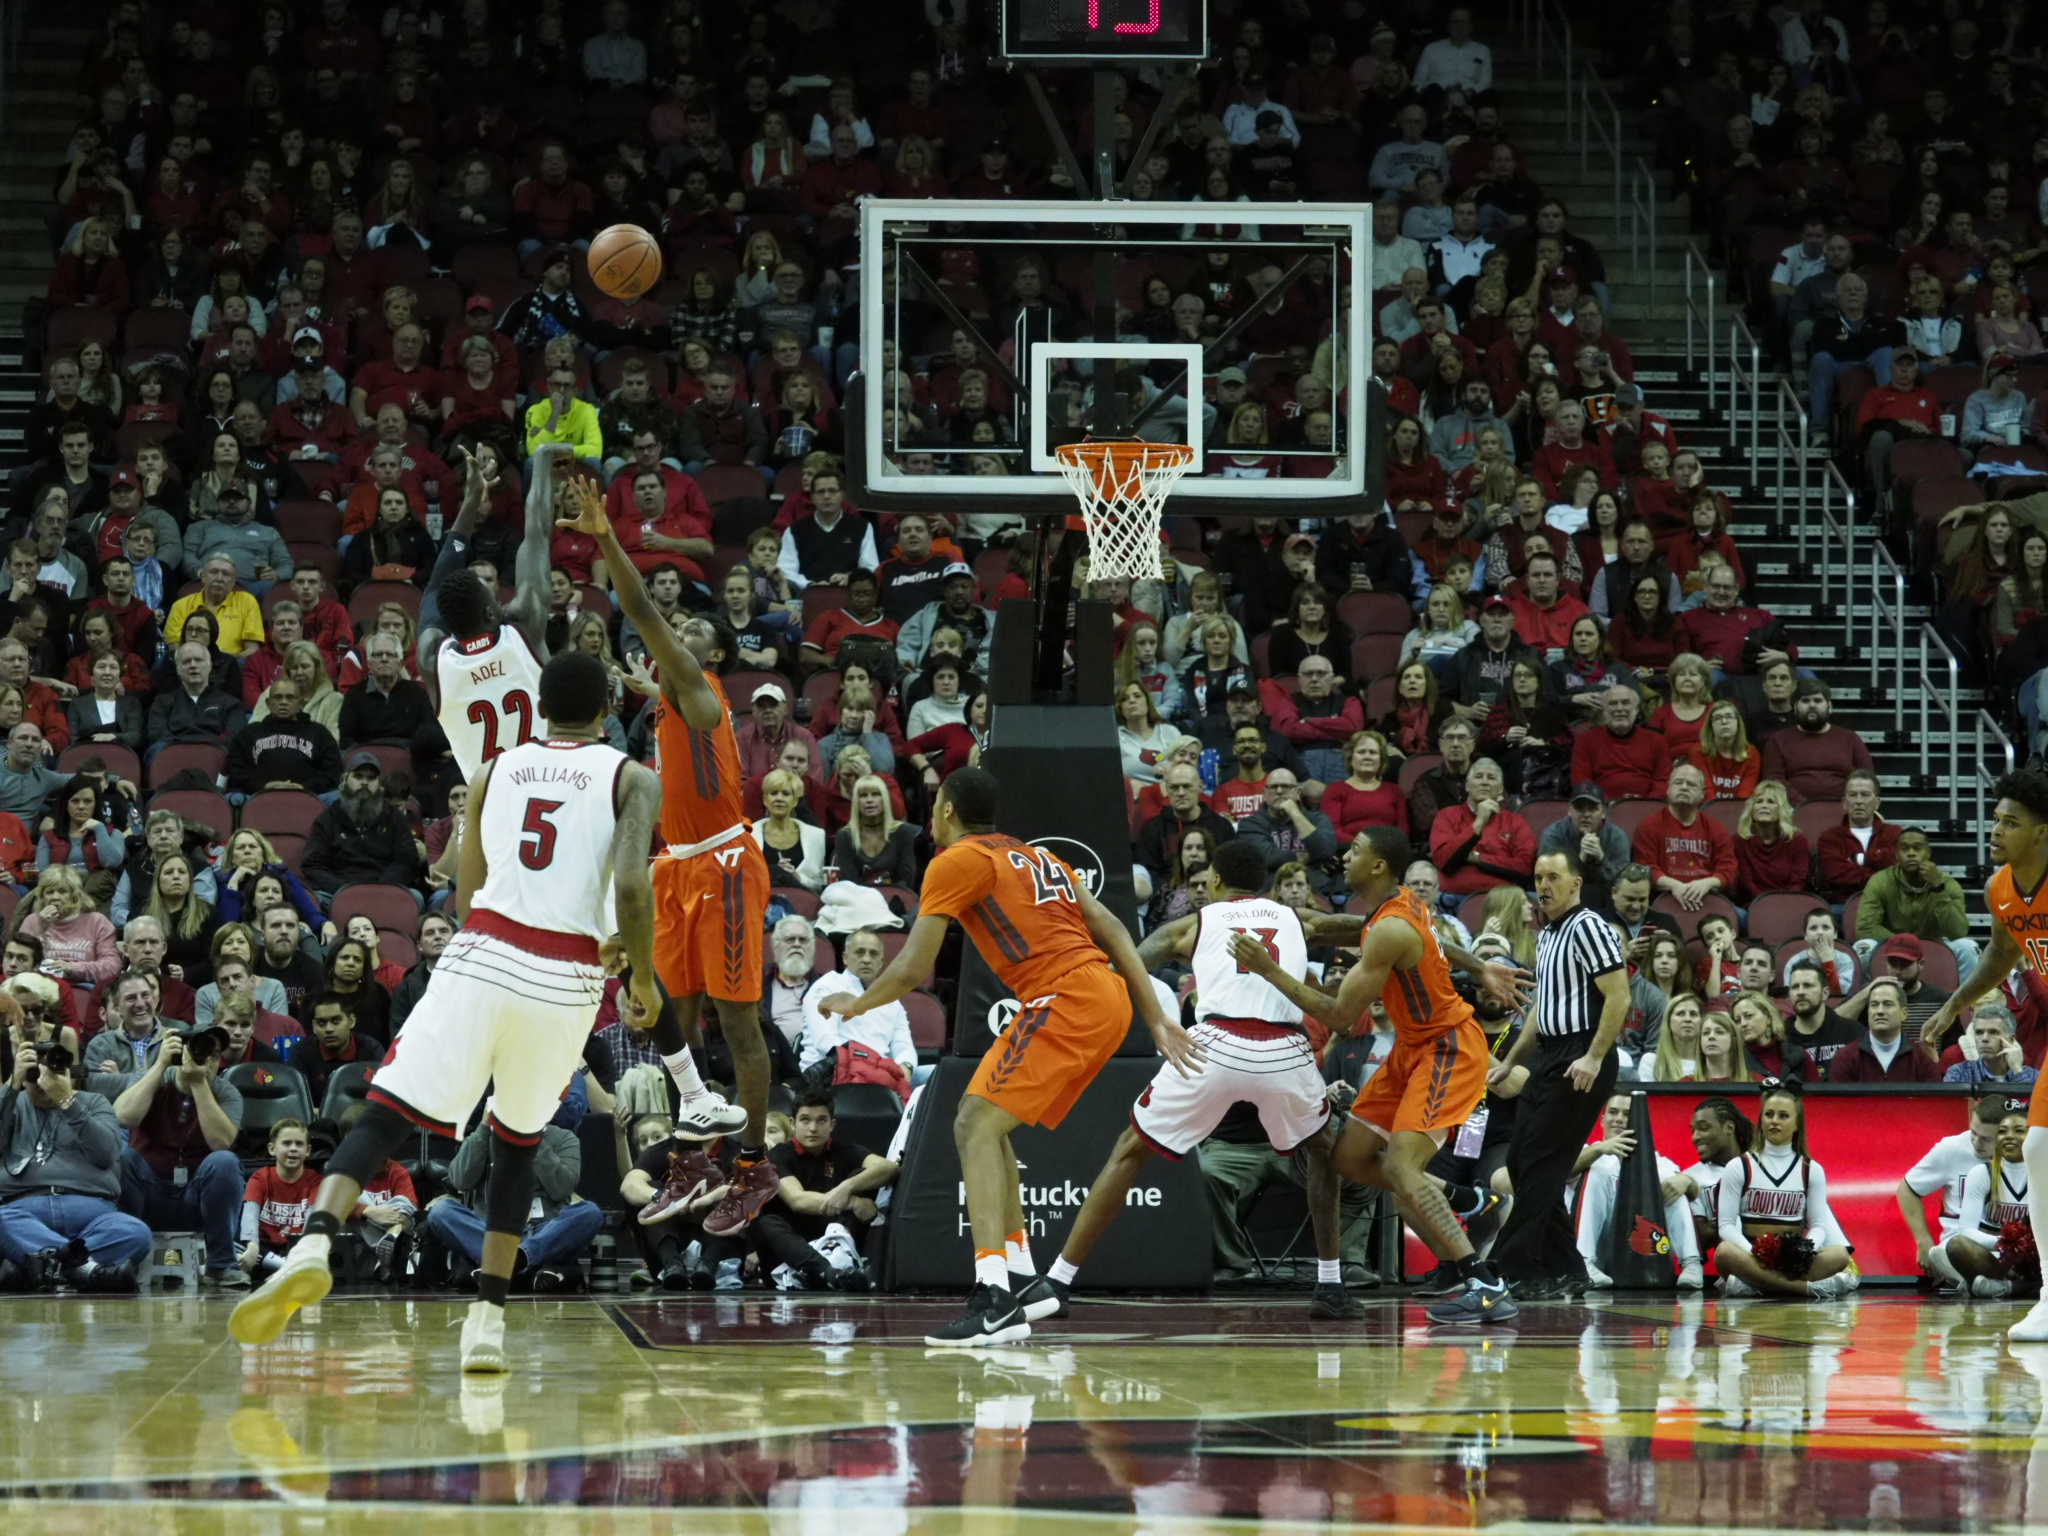 Virginia Tech Hokies at Louisville Cardinals Preview 01/13/18